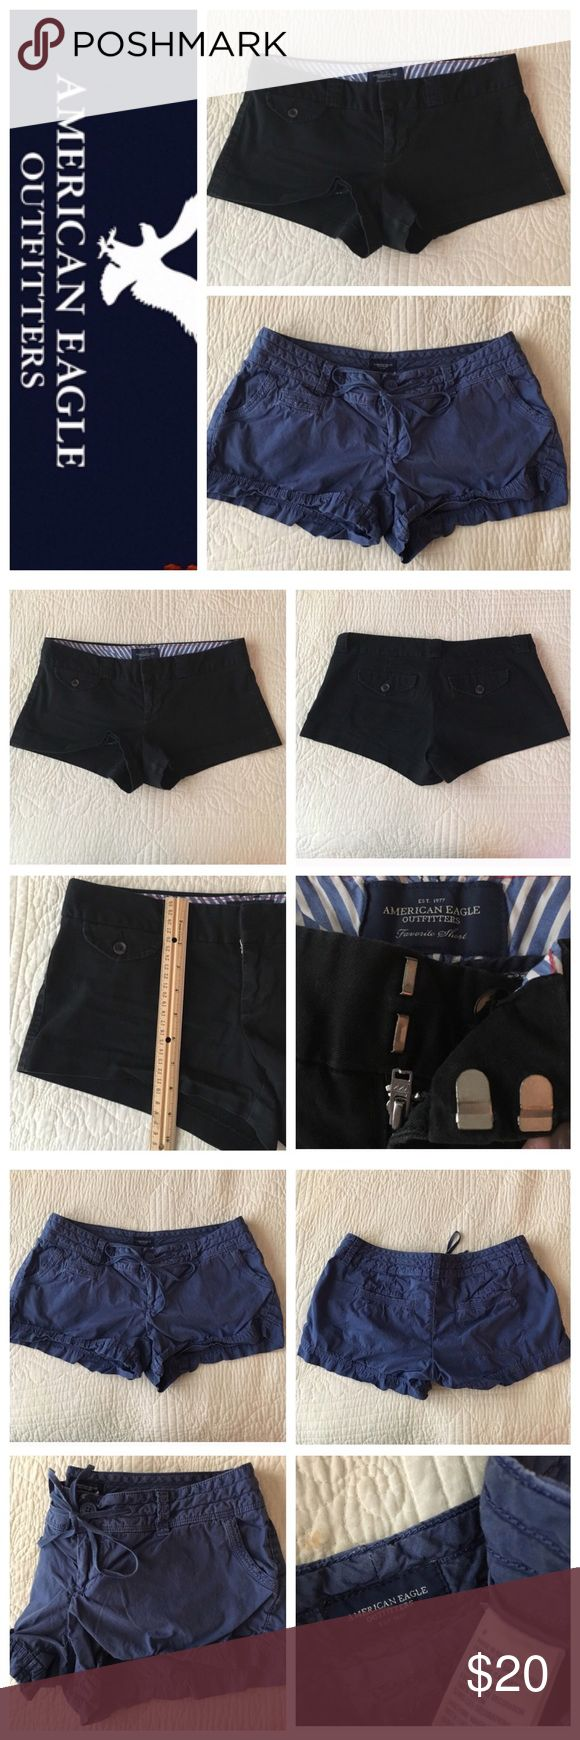 """‼️SALE! American Eagle shorts! 2 for $12! These shorts were previously listed separately so don't miss out on this great deal! Includes: One pair of black American Eagle """"favorite short"""" - size 4. Softer material than jeans! Length shown in picture with a ruler. Zipper and double-clasp closure, button pockets on back. And One pair of blue American Eagle shorts - size 4. Super cute shorts with a material softer than jeans! Four pockets and a zipper/button/tie closure. Both are previously…"""